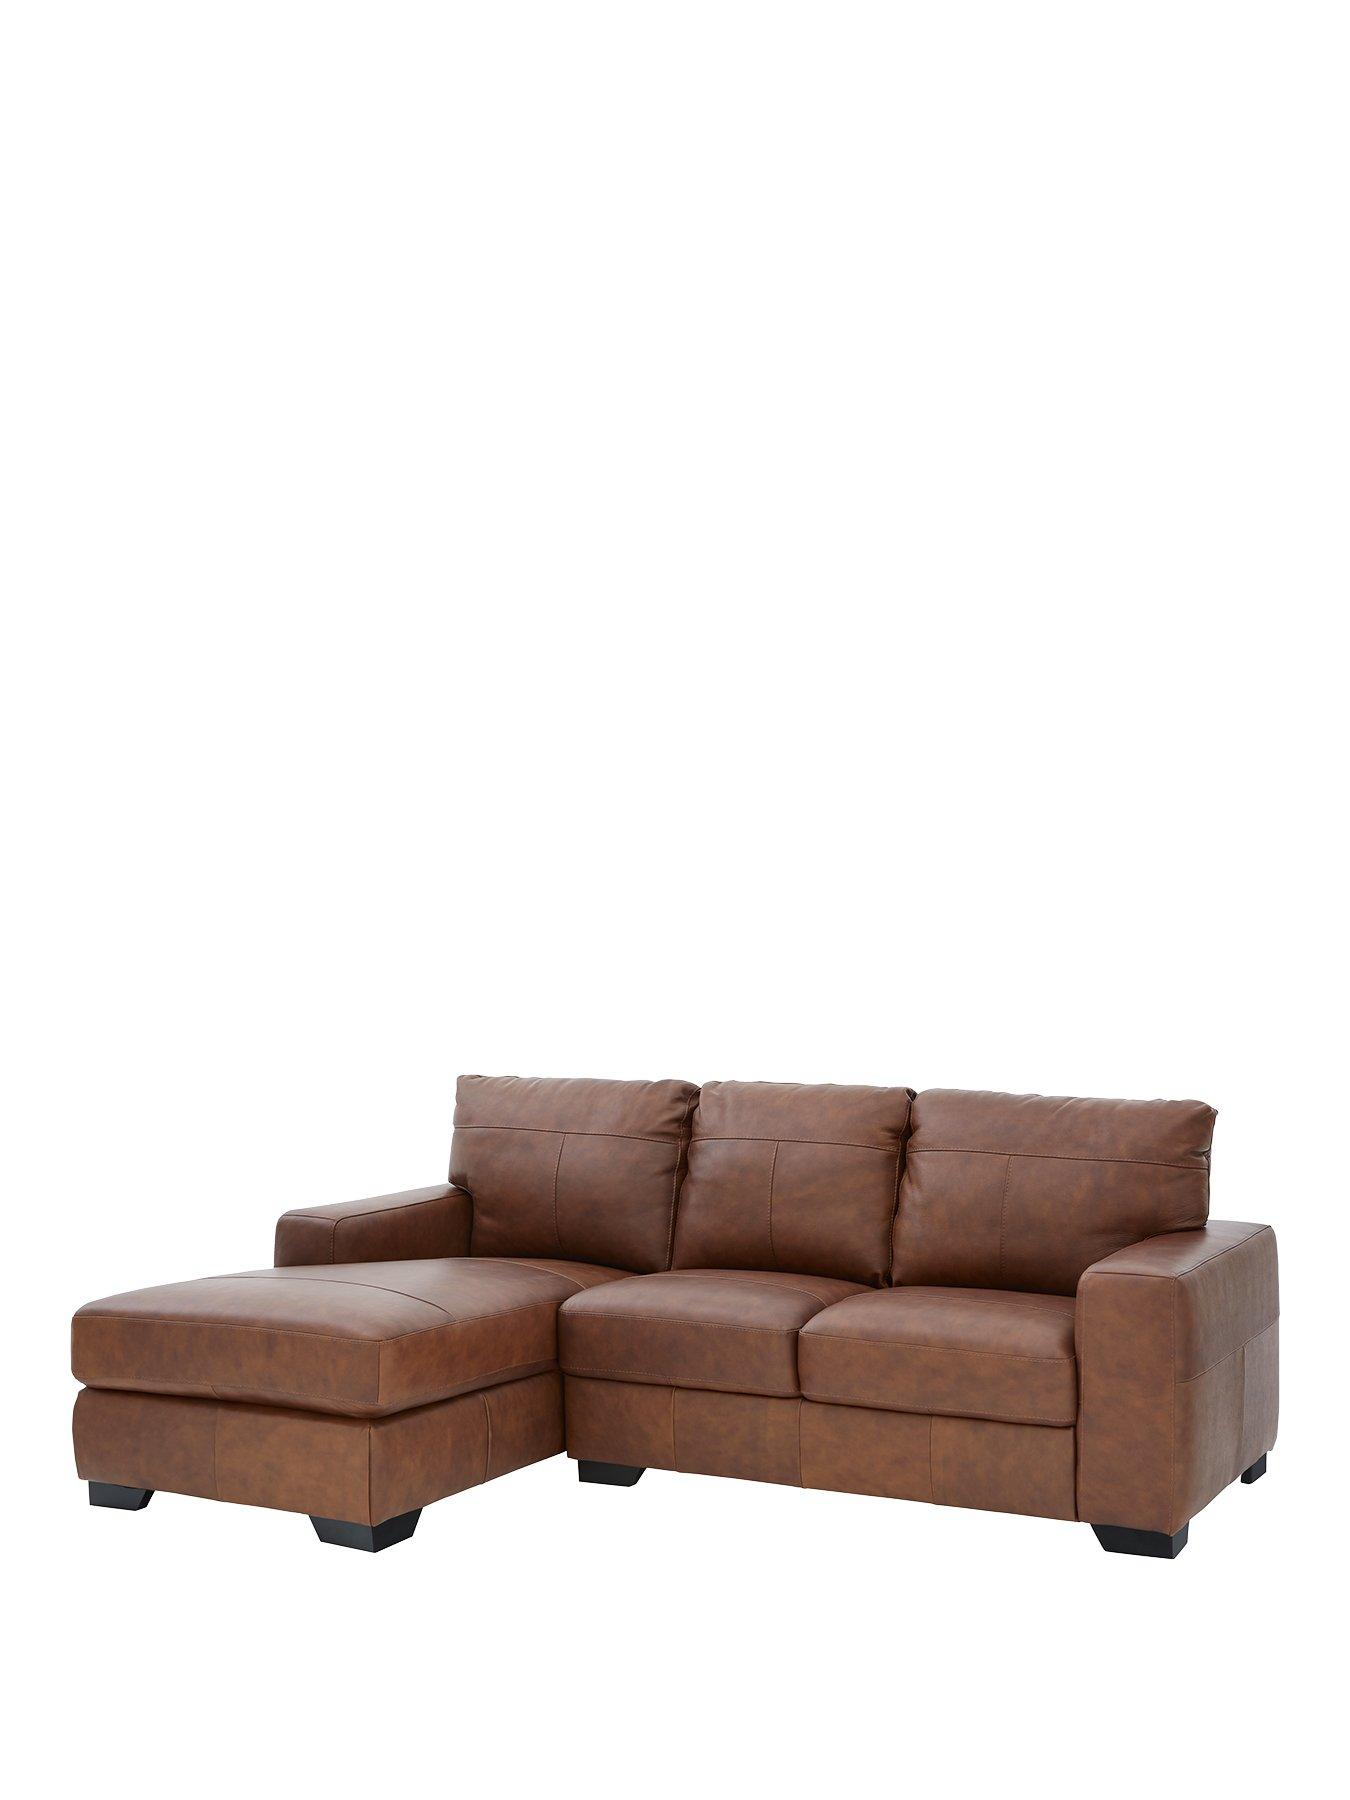 Hampshire 3 Seater Left Hand Premium Leather Corner Chaise Sofa